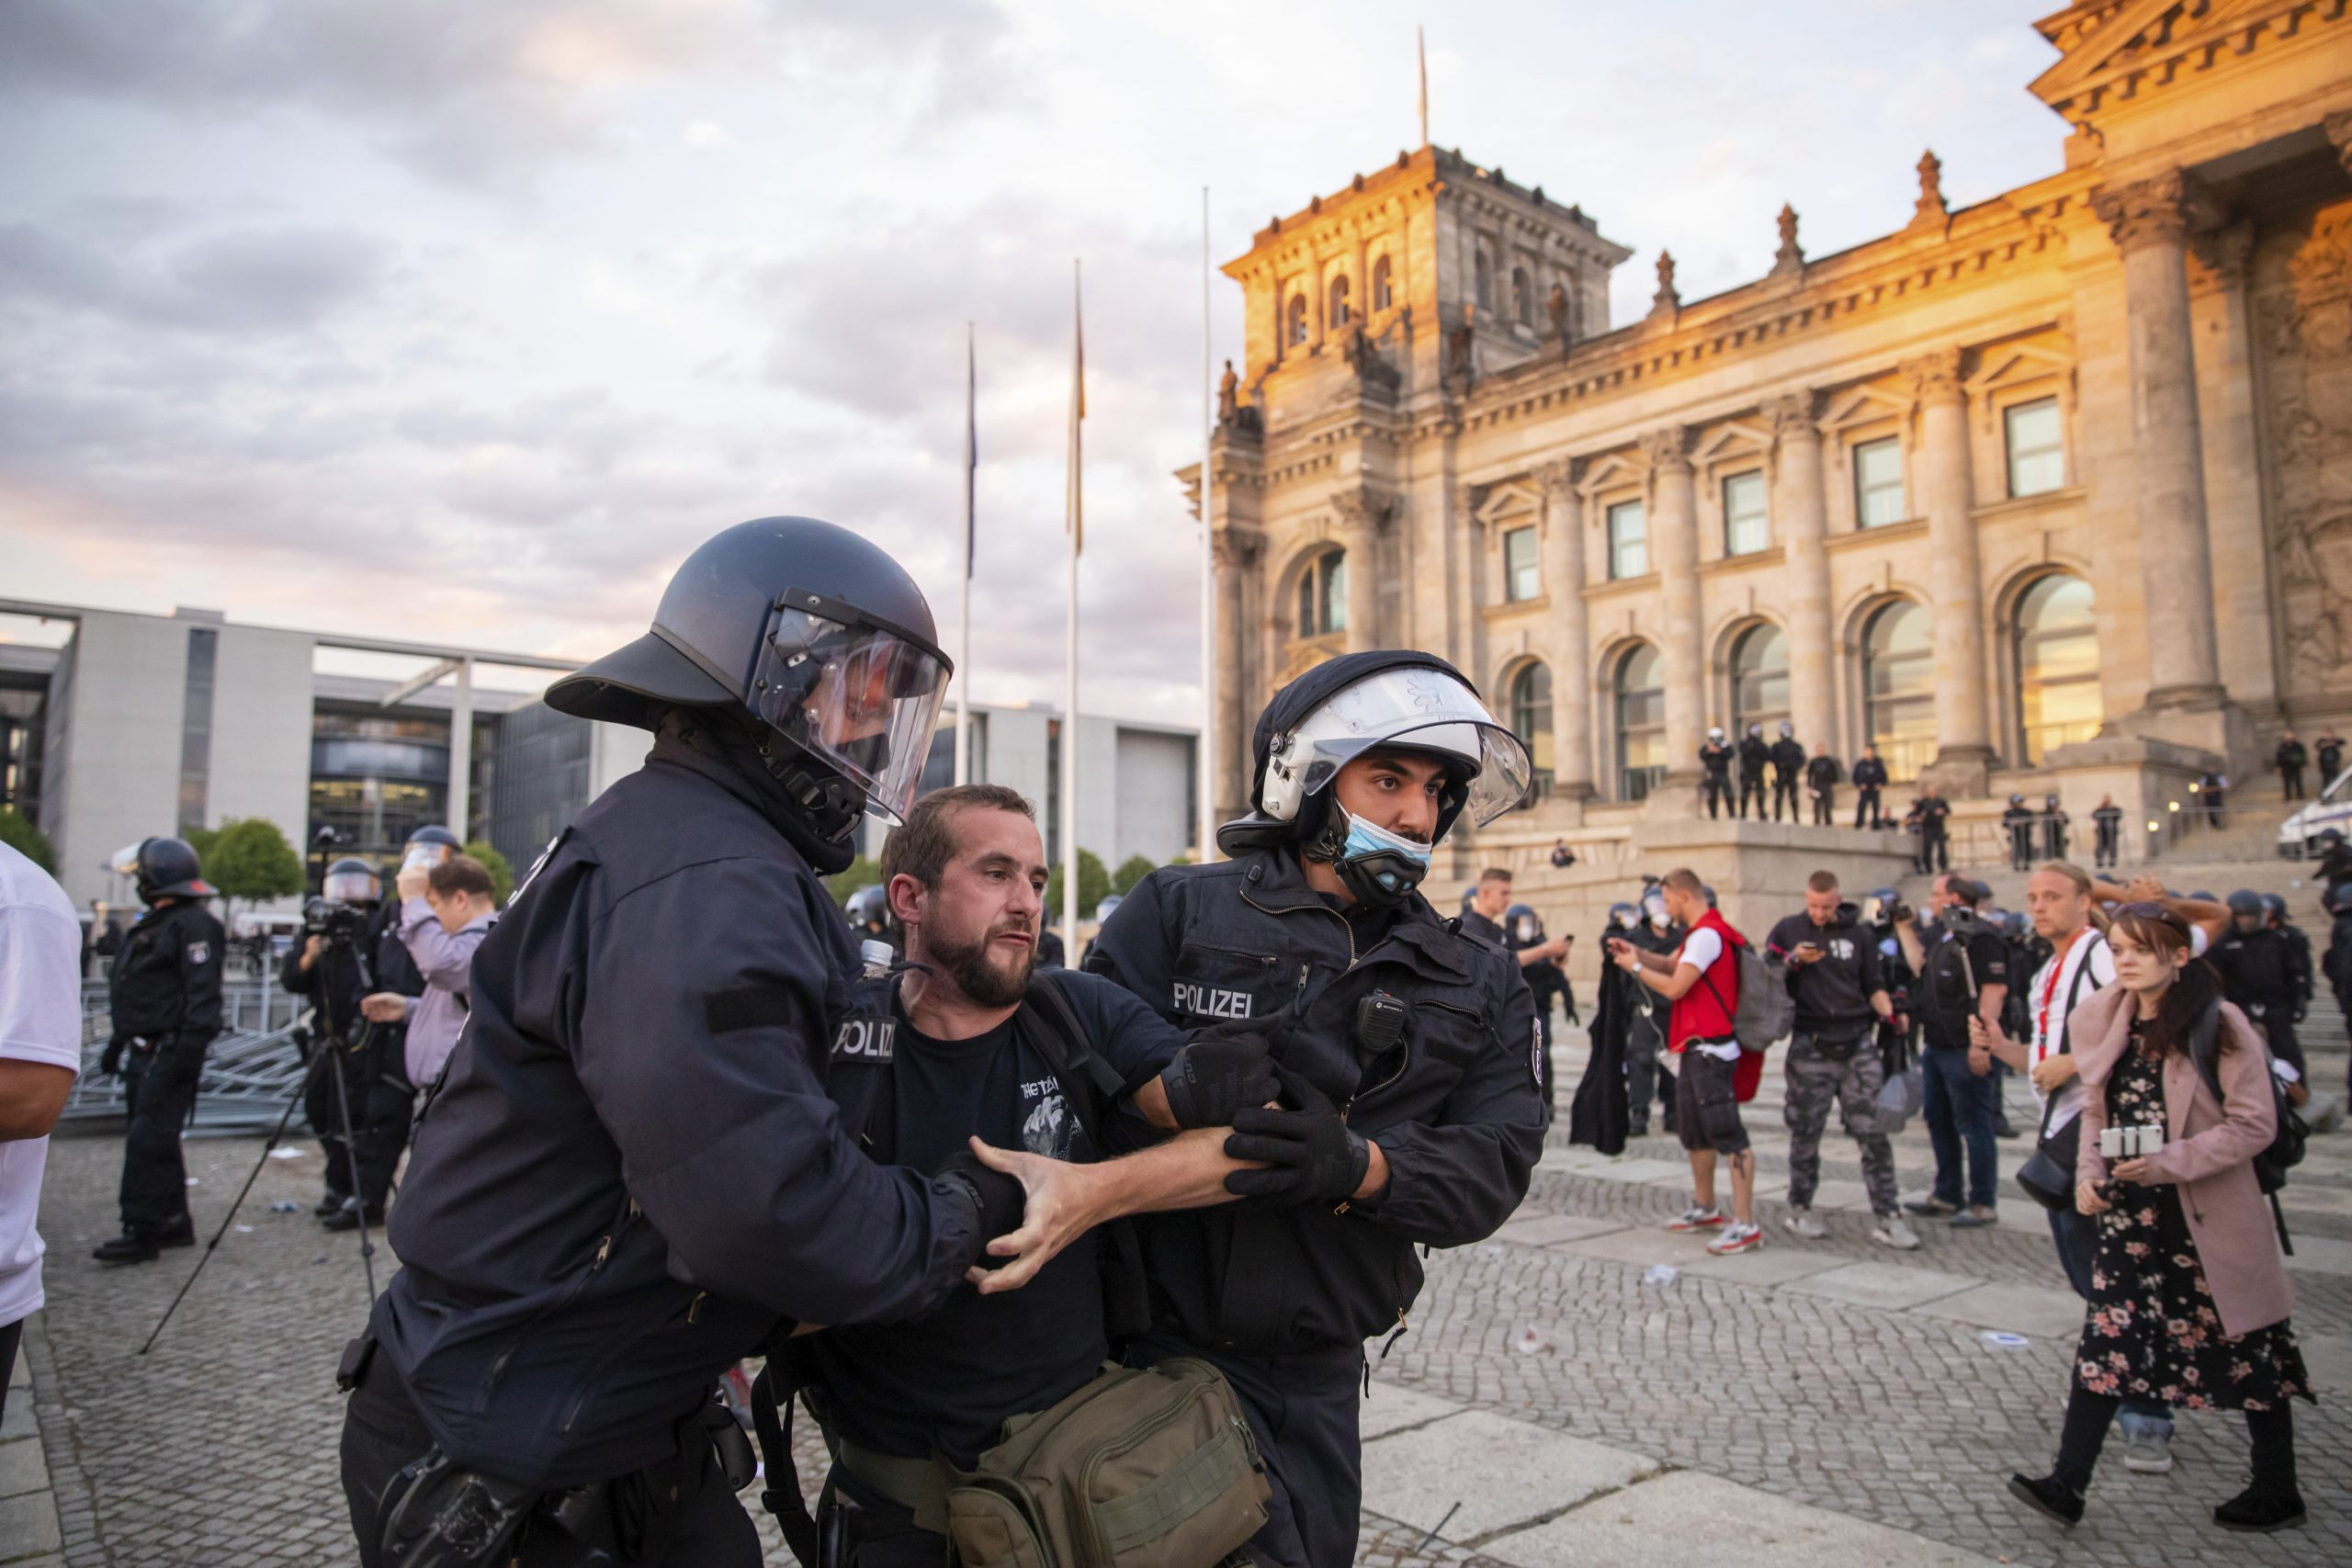 German leaders to condemn the far right trying to storm the Reichstag